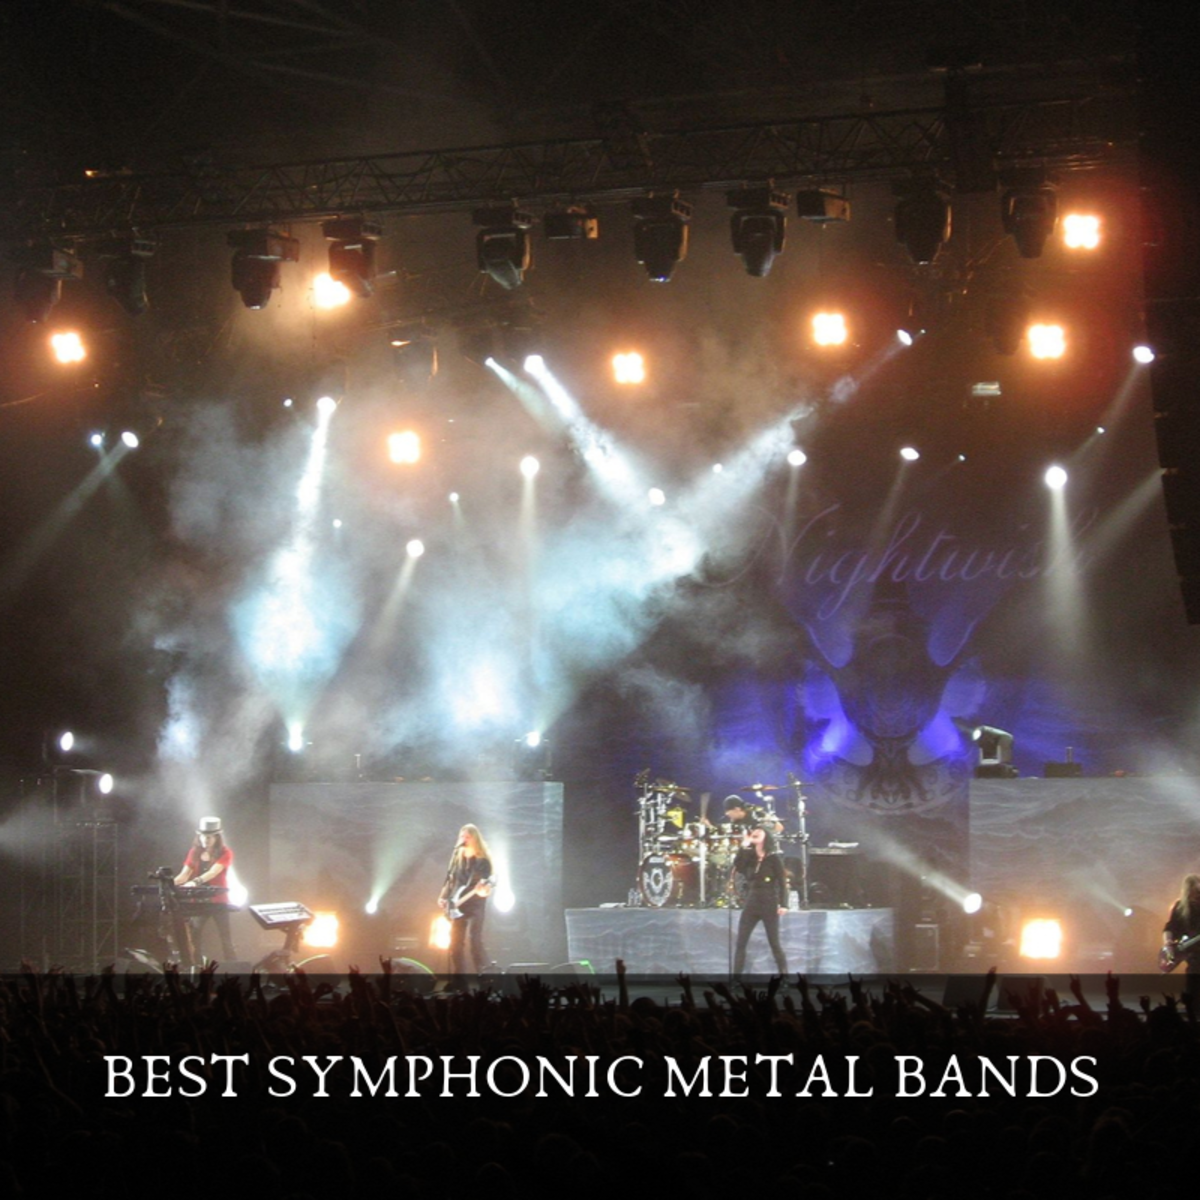 100 Best Symphonic Metal Bands